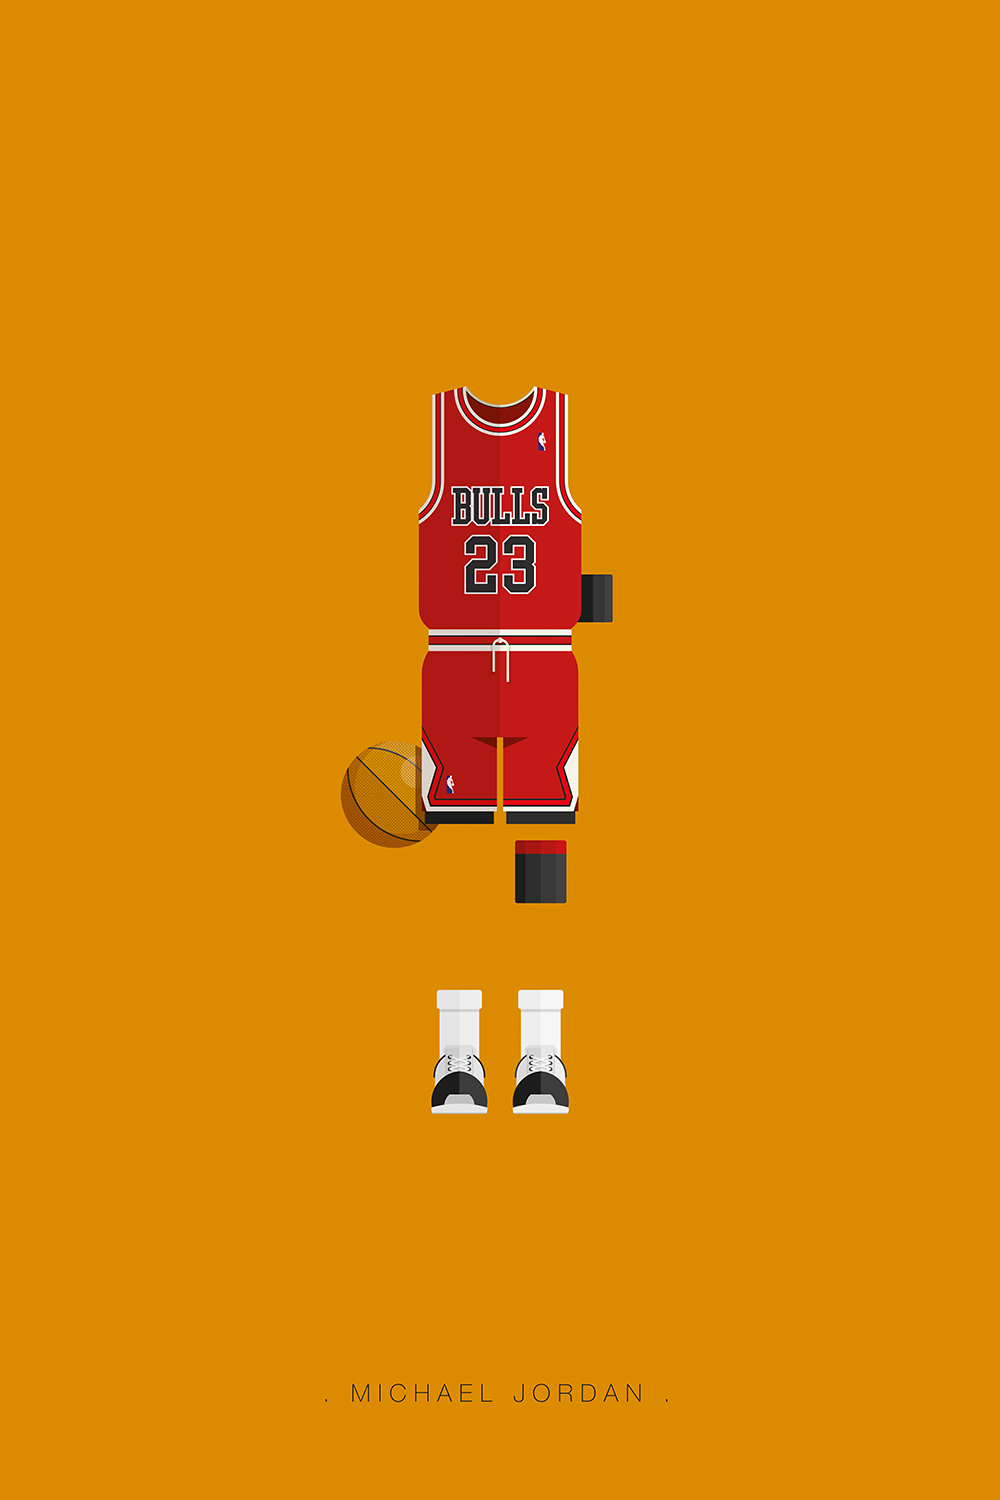 Minimalist poster of Bulls jersey worn by Michael Jordan